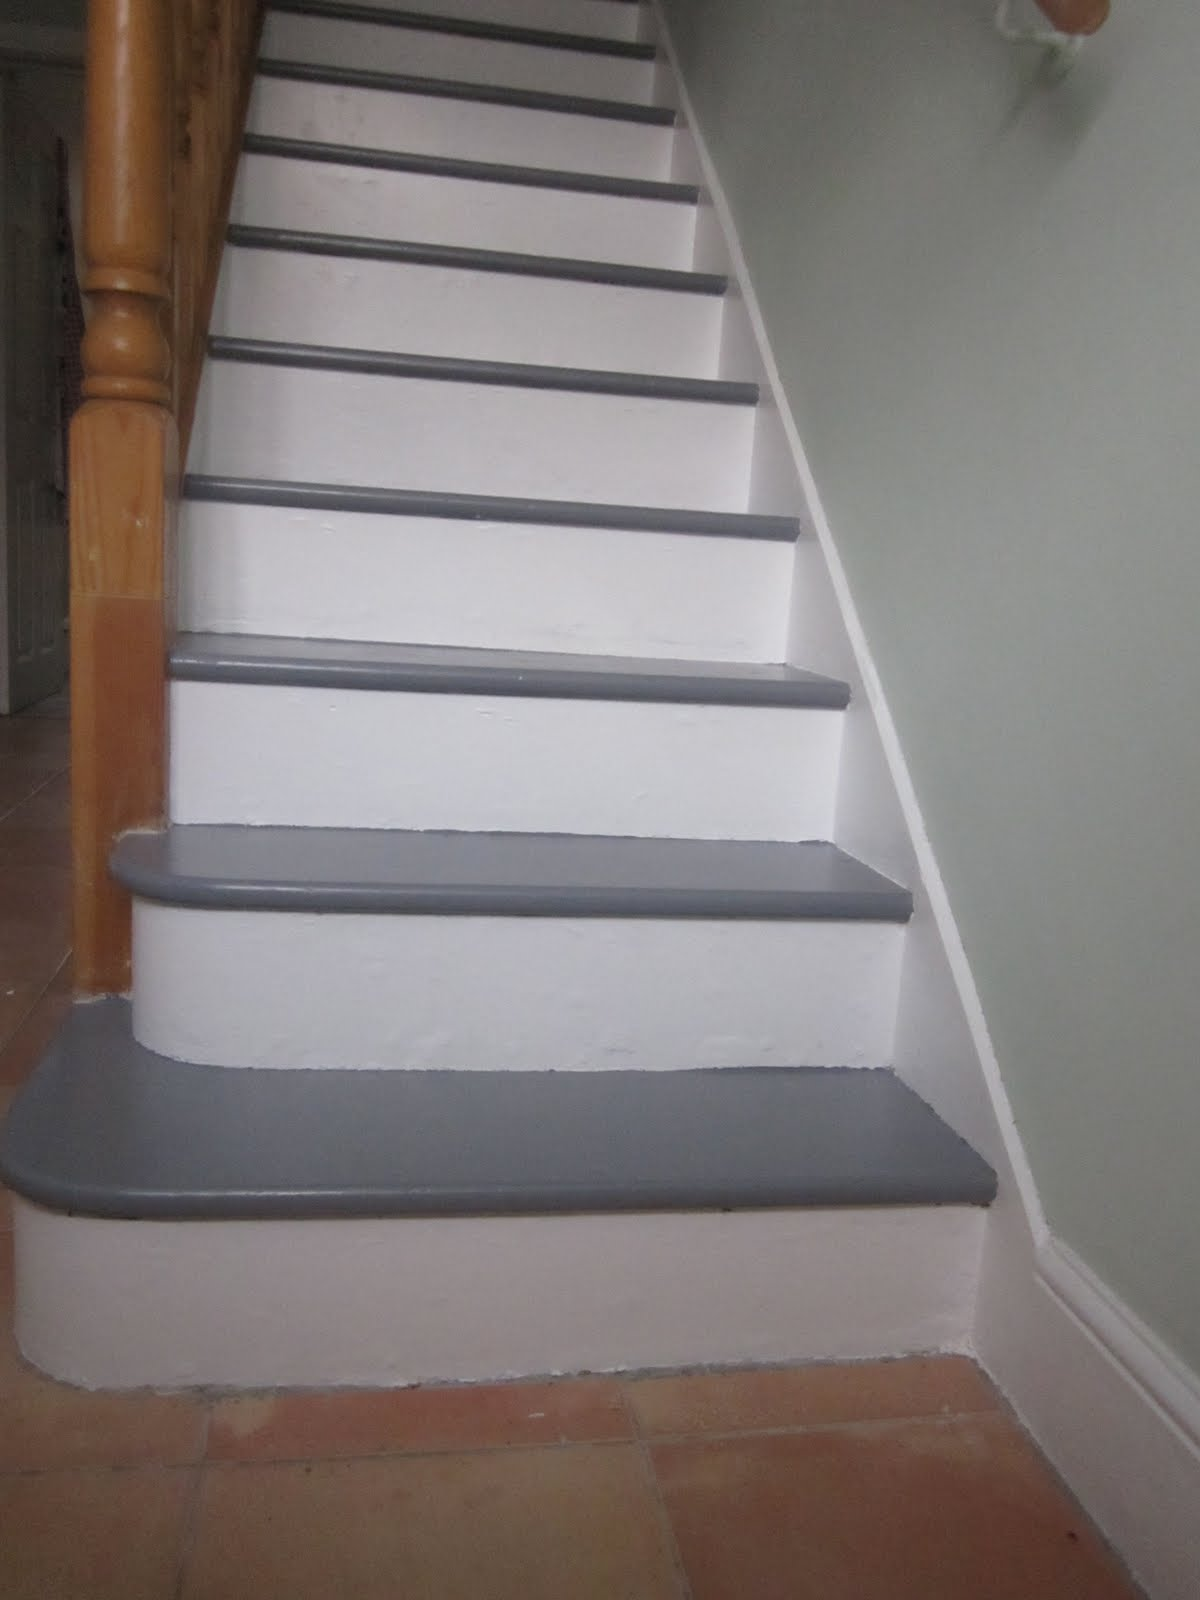 niall and mitch got hitched: Painted Stairs-Main Floor